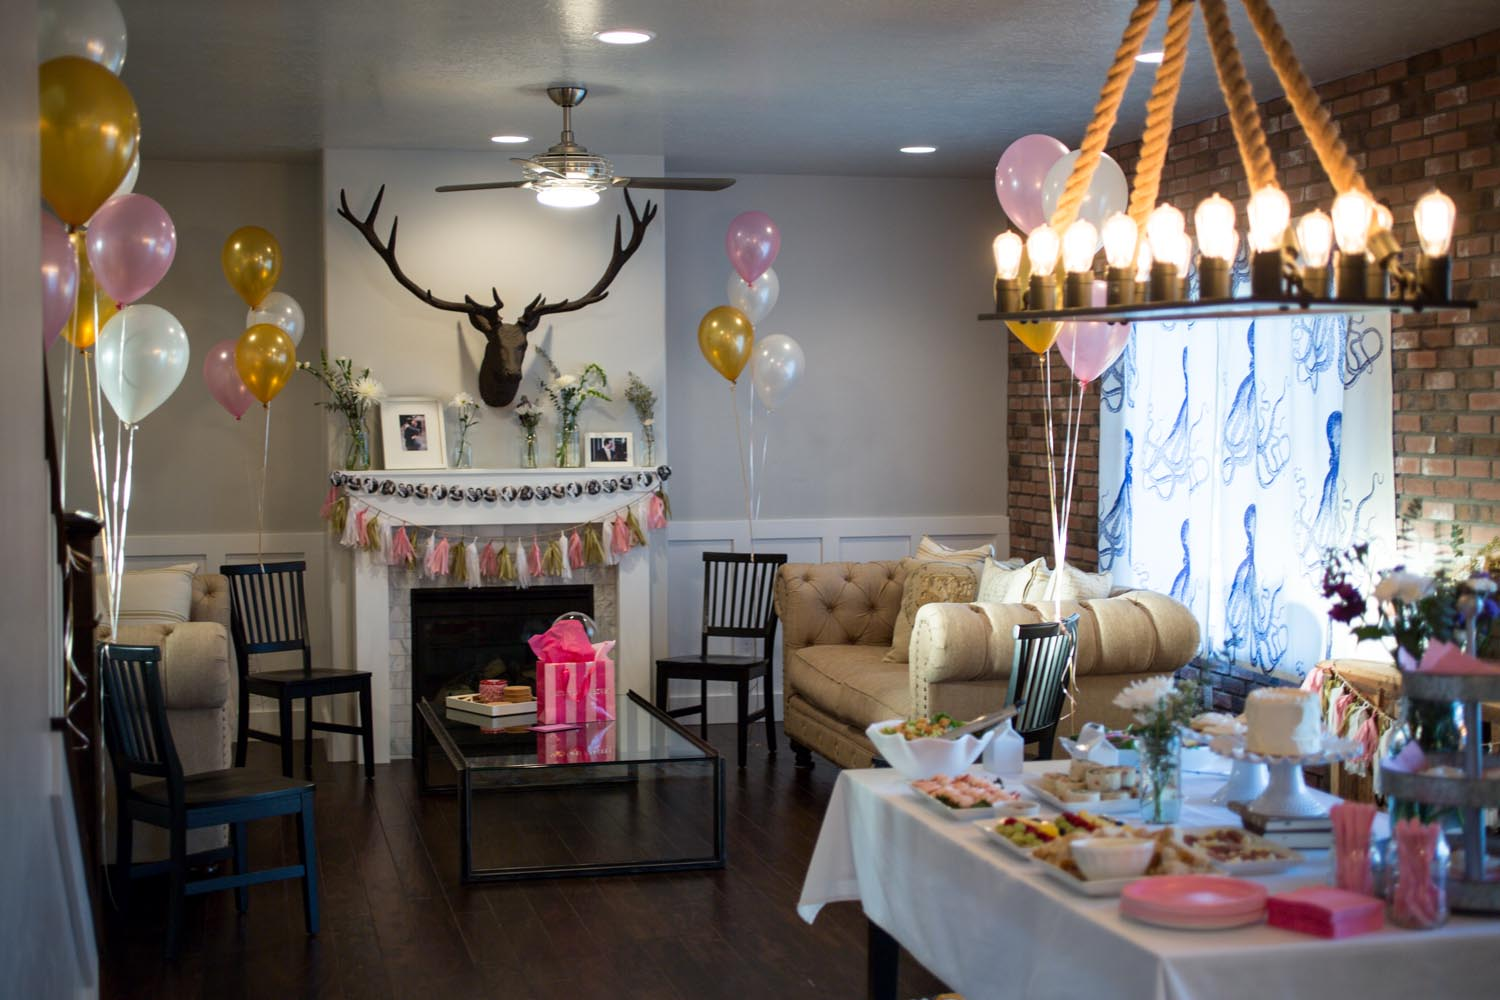 Bridal Shower Party Decorations